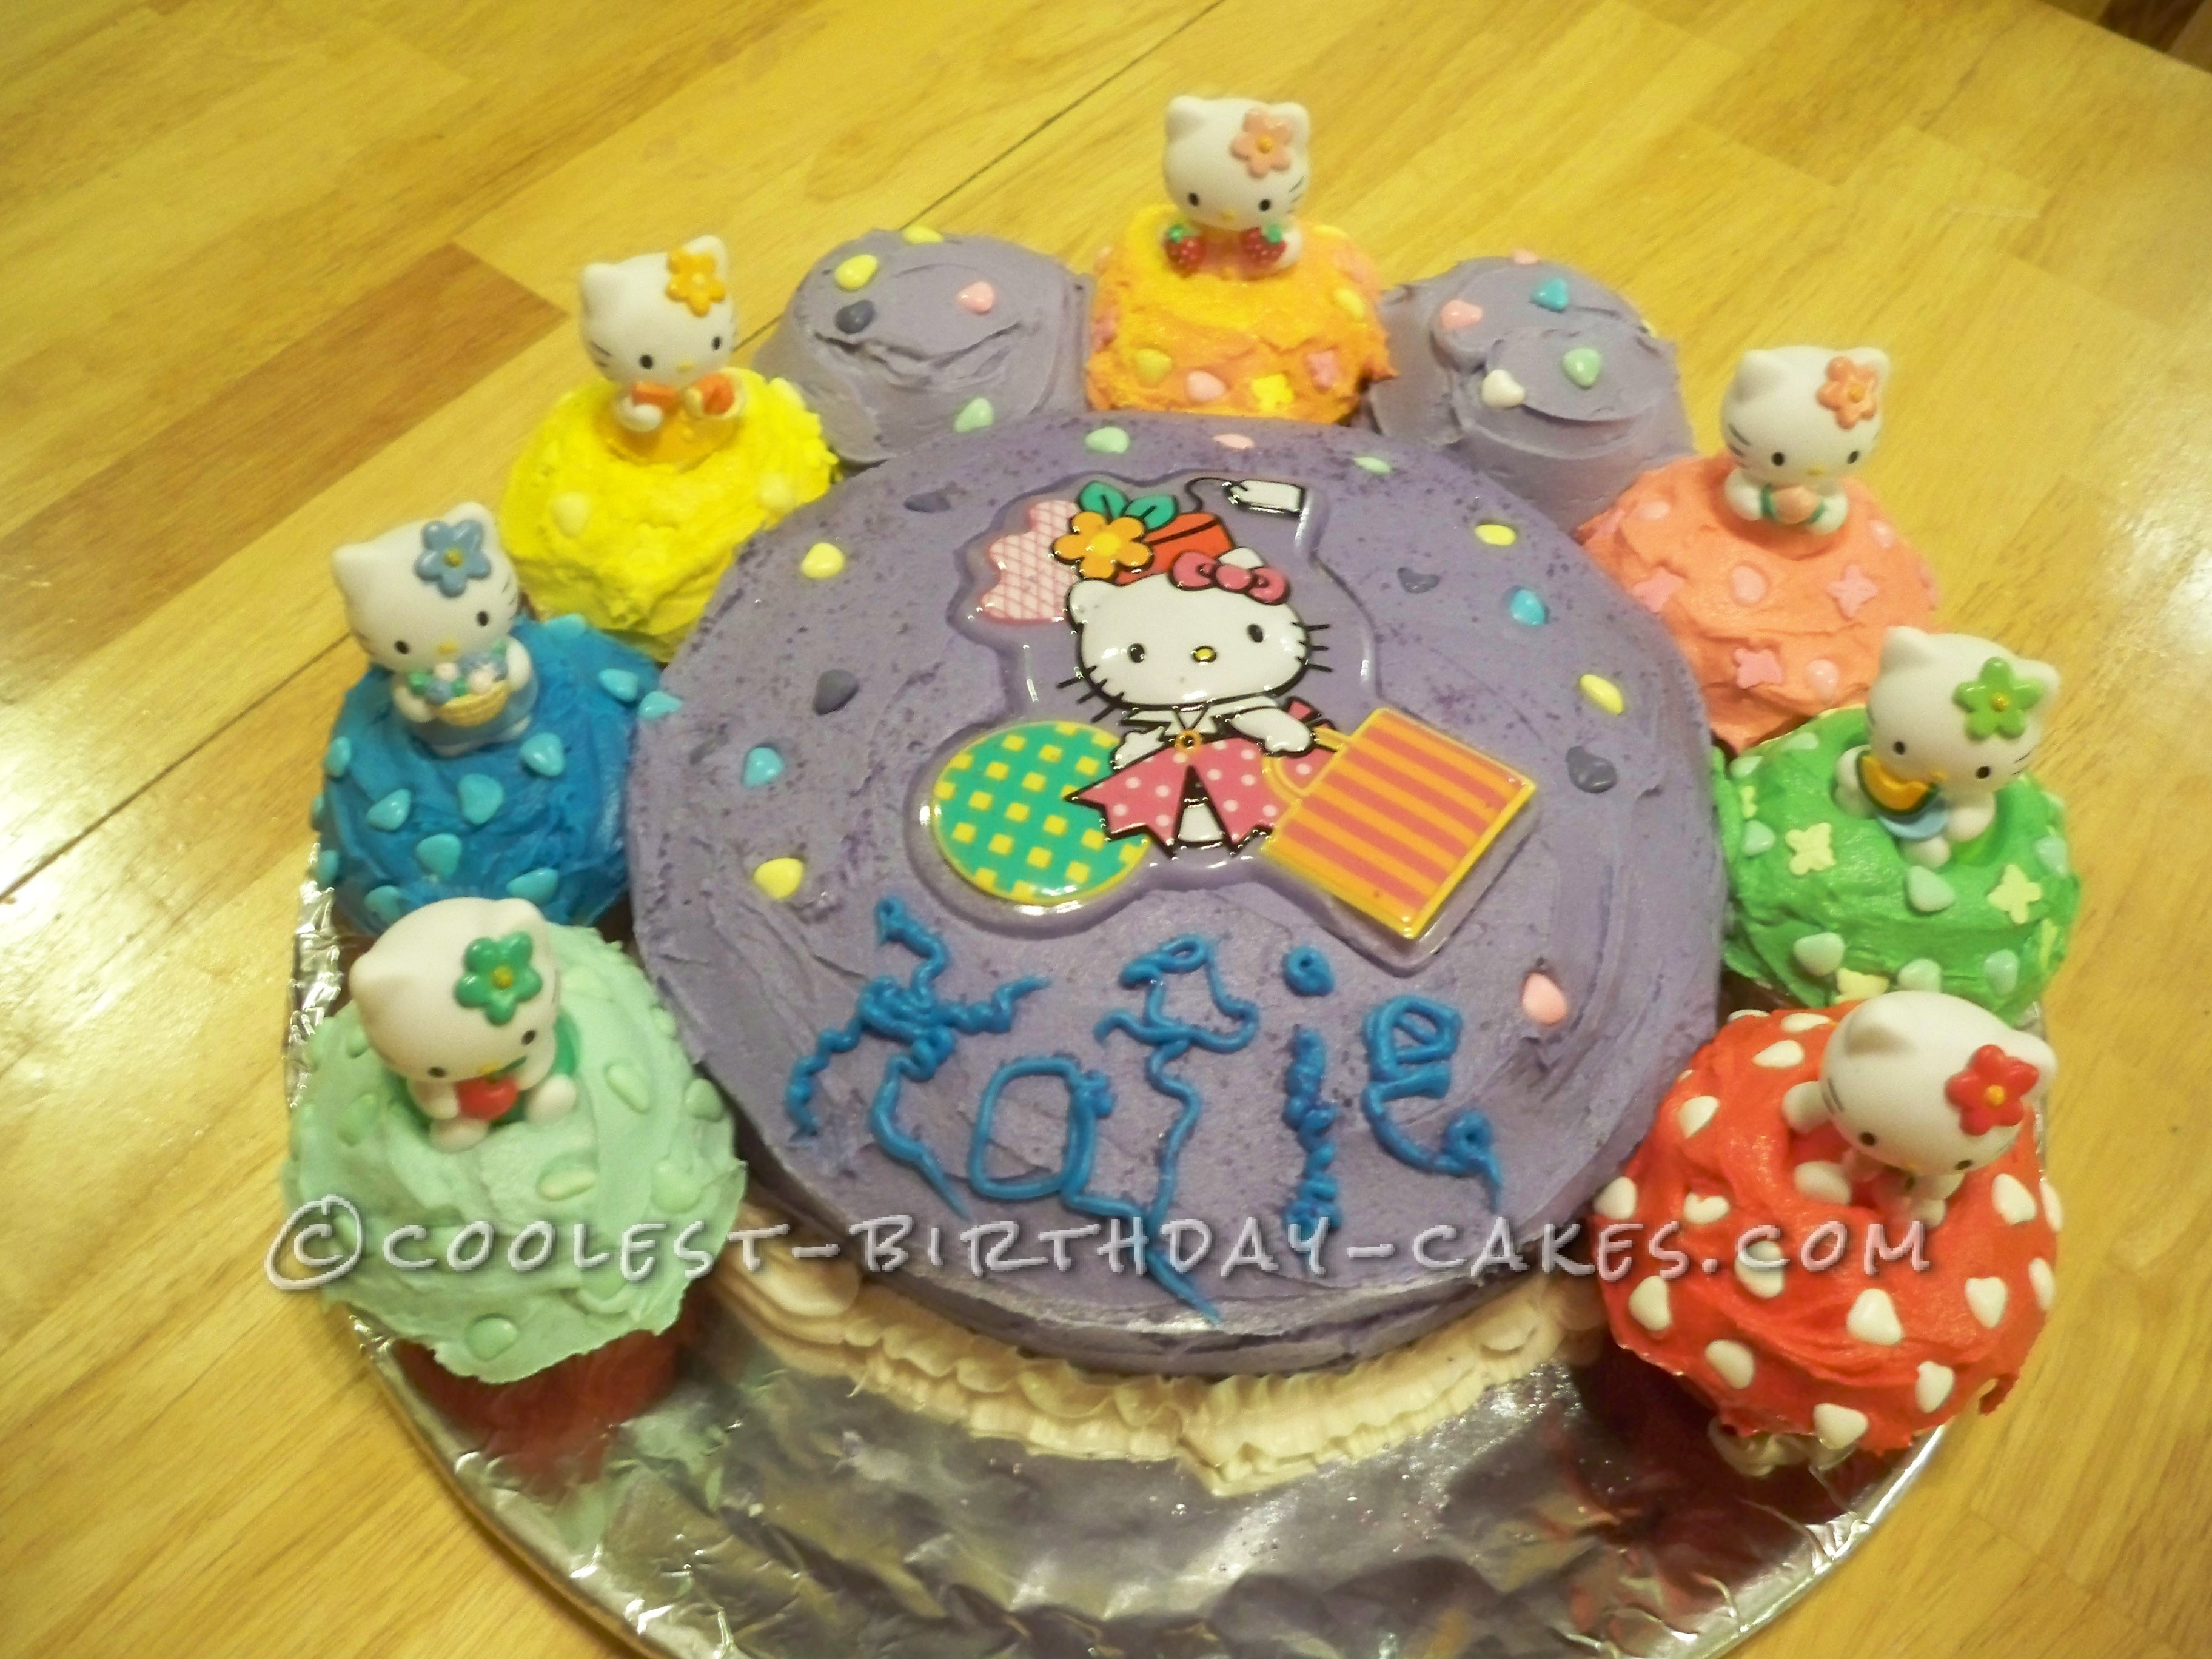 My Daughter Loves Hello Kitty I Stopped Buying Birthday Cakes Several Years Ago And Have Been Making Them Ever Since We Looked Through The Pictures On